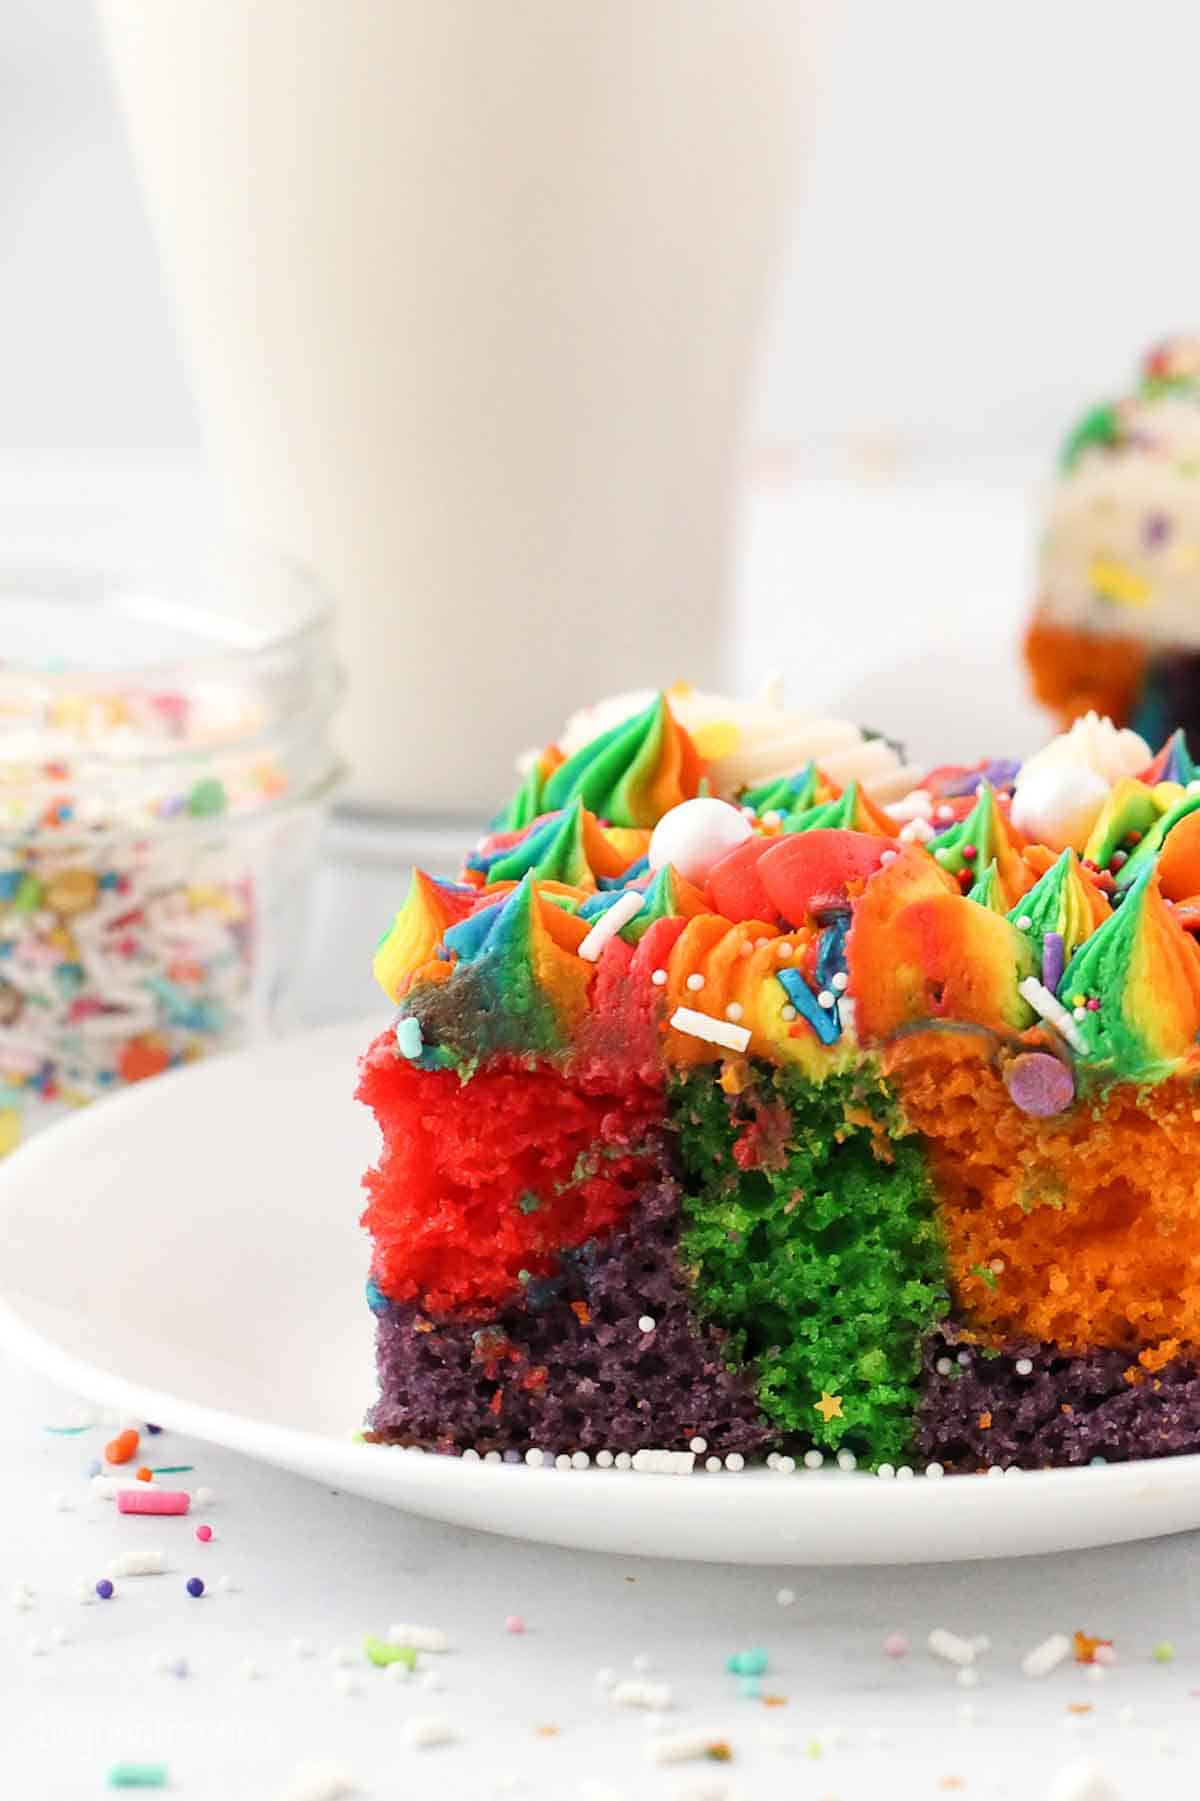 A slice of rainbow cake with a glass of milk in the background